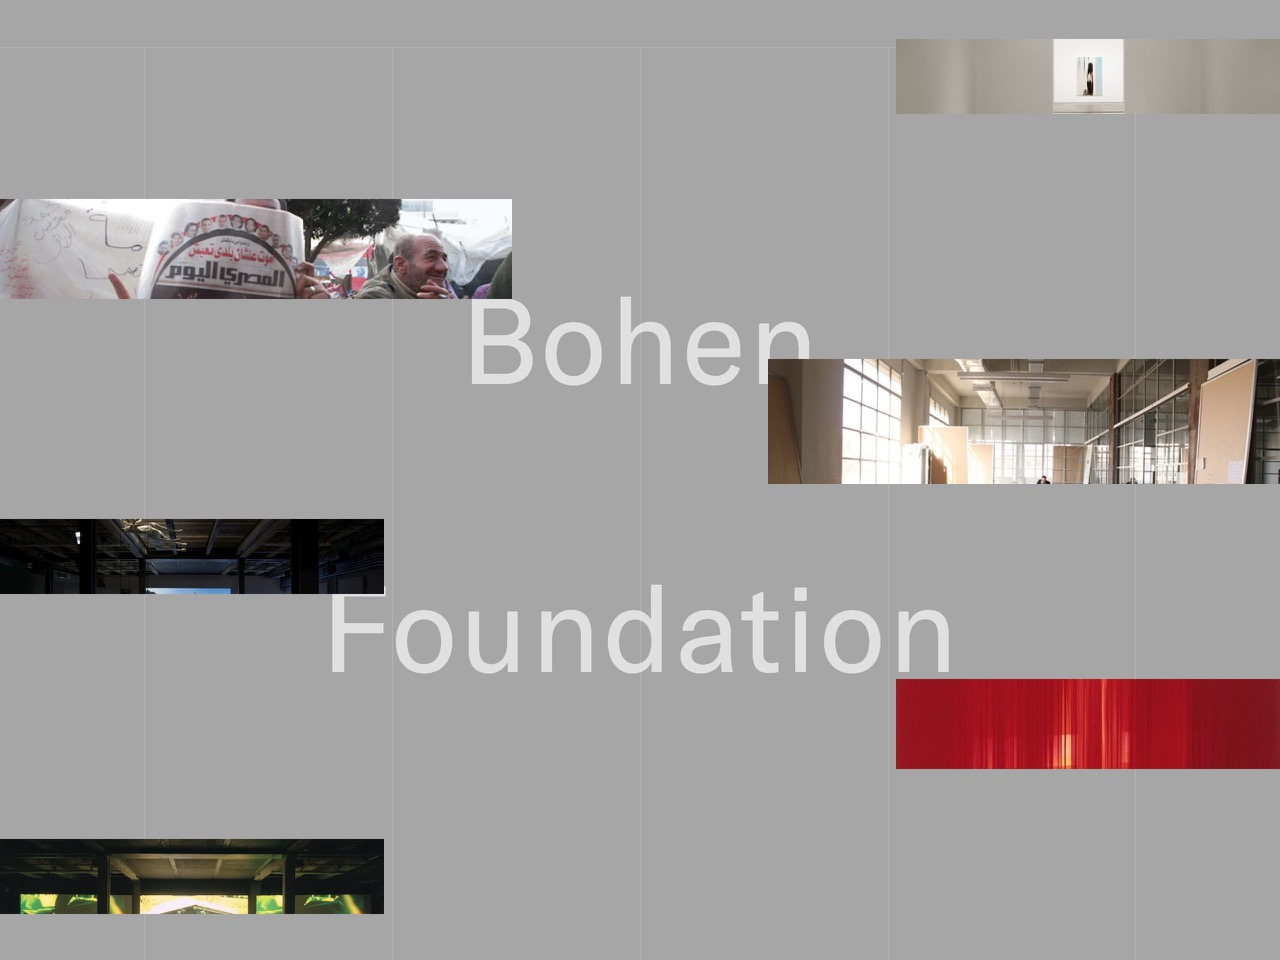 The bohen foundation